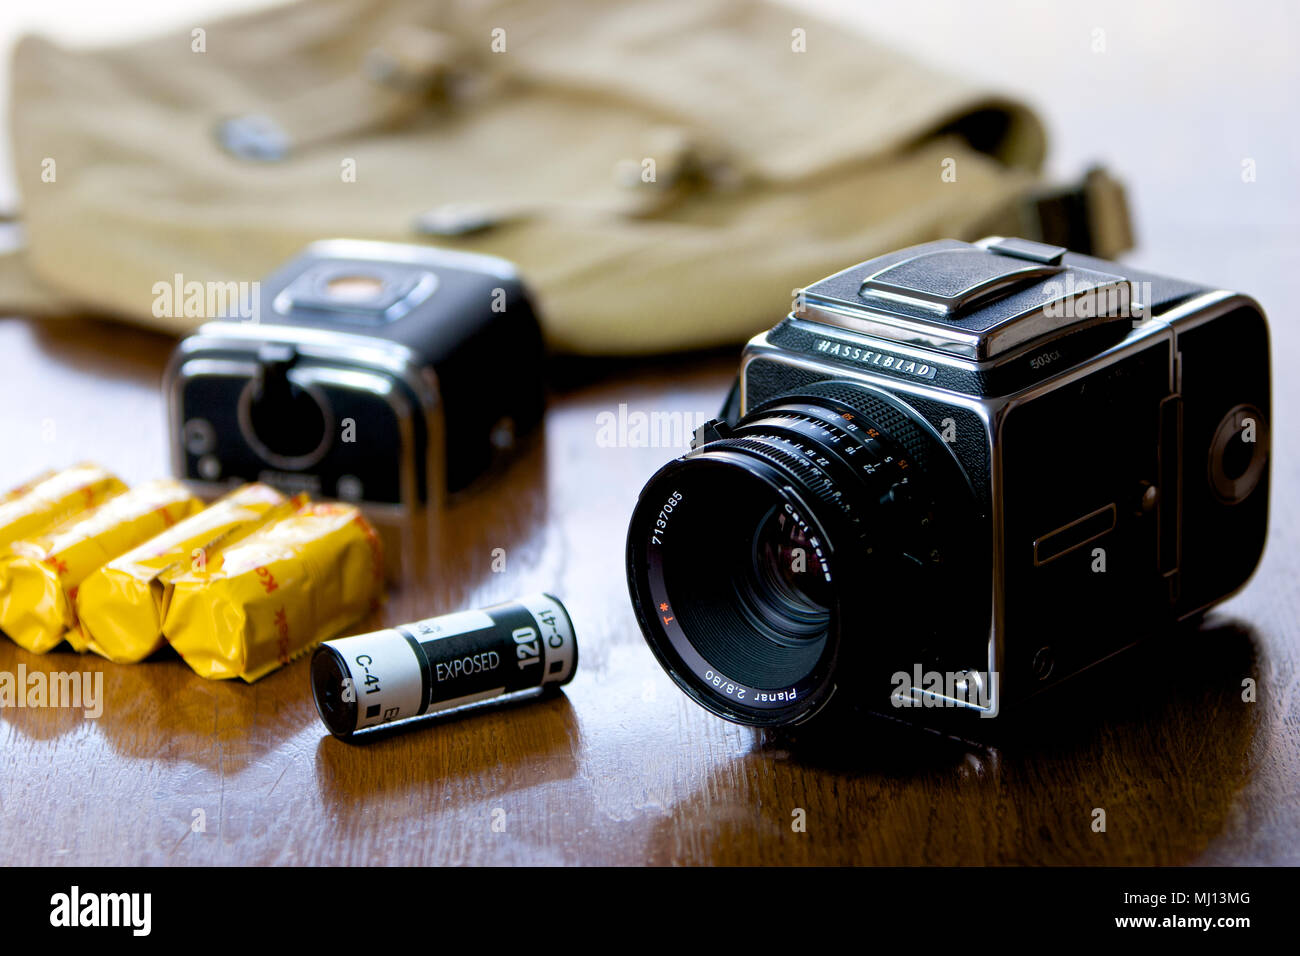 Hasselblad 503cx SLR film camera c1980 with 80mm Planer lens. - Stock Image